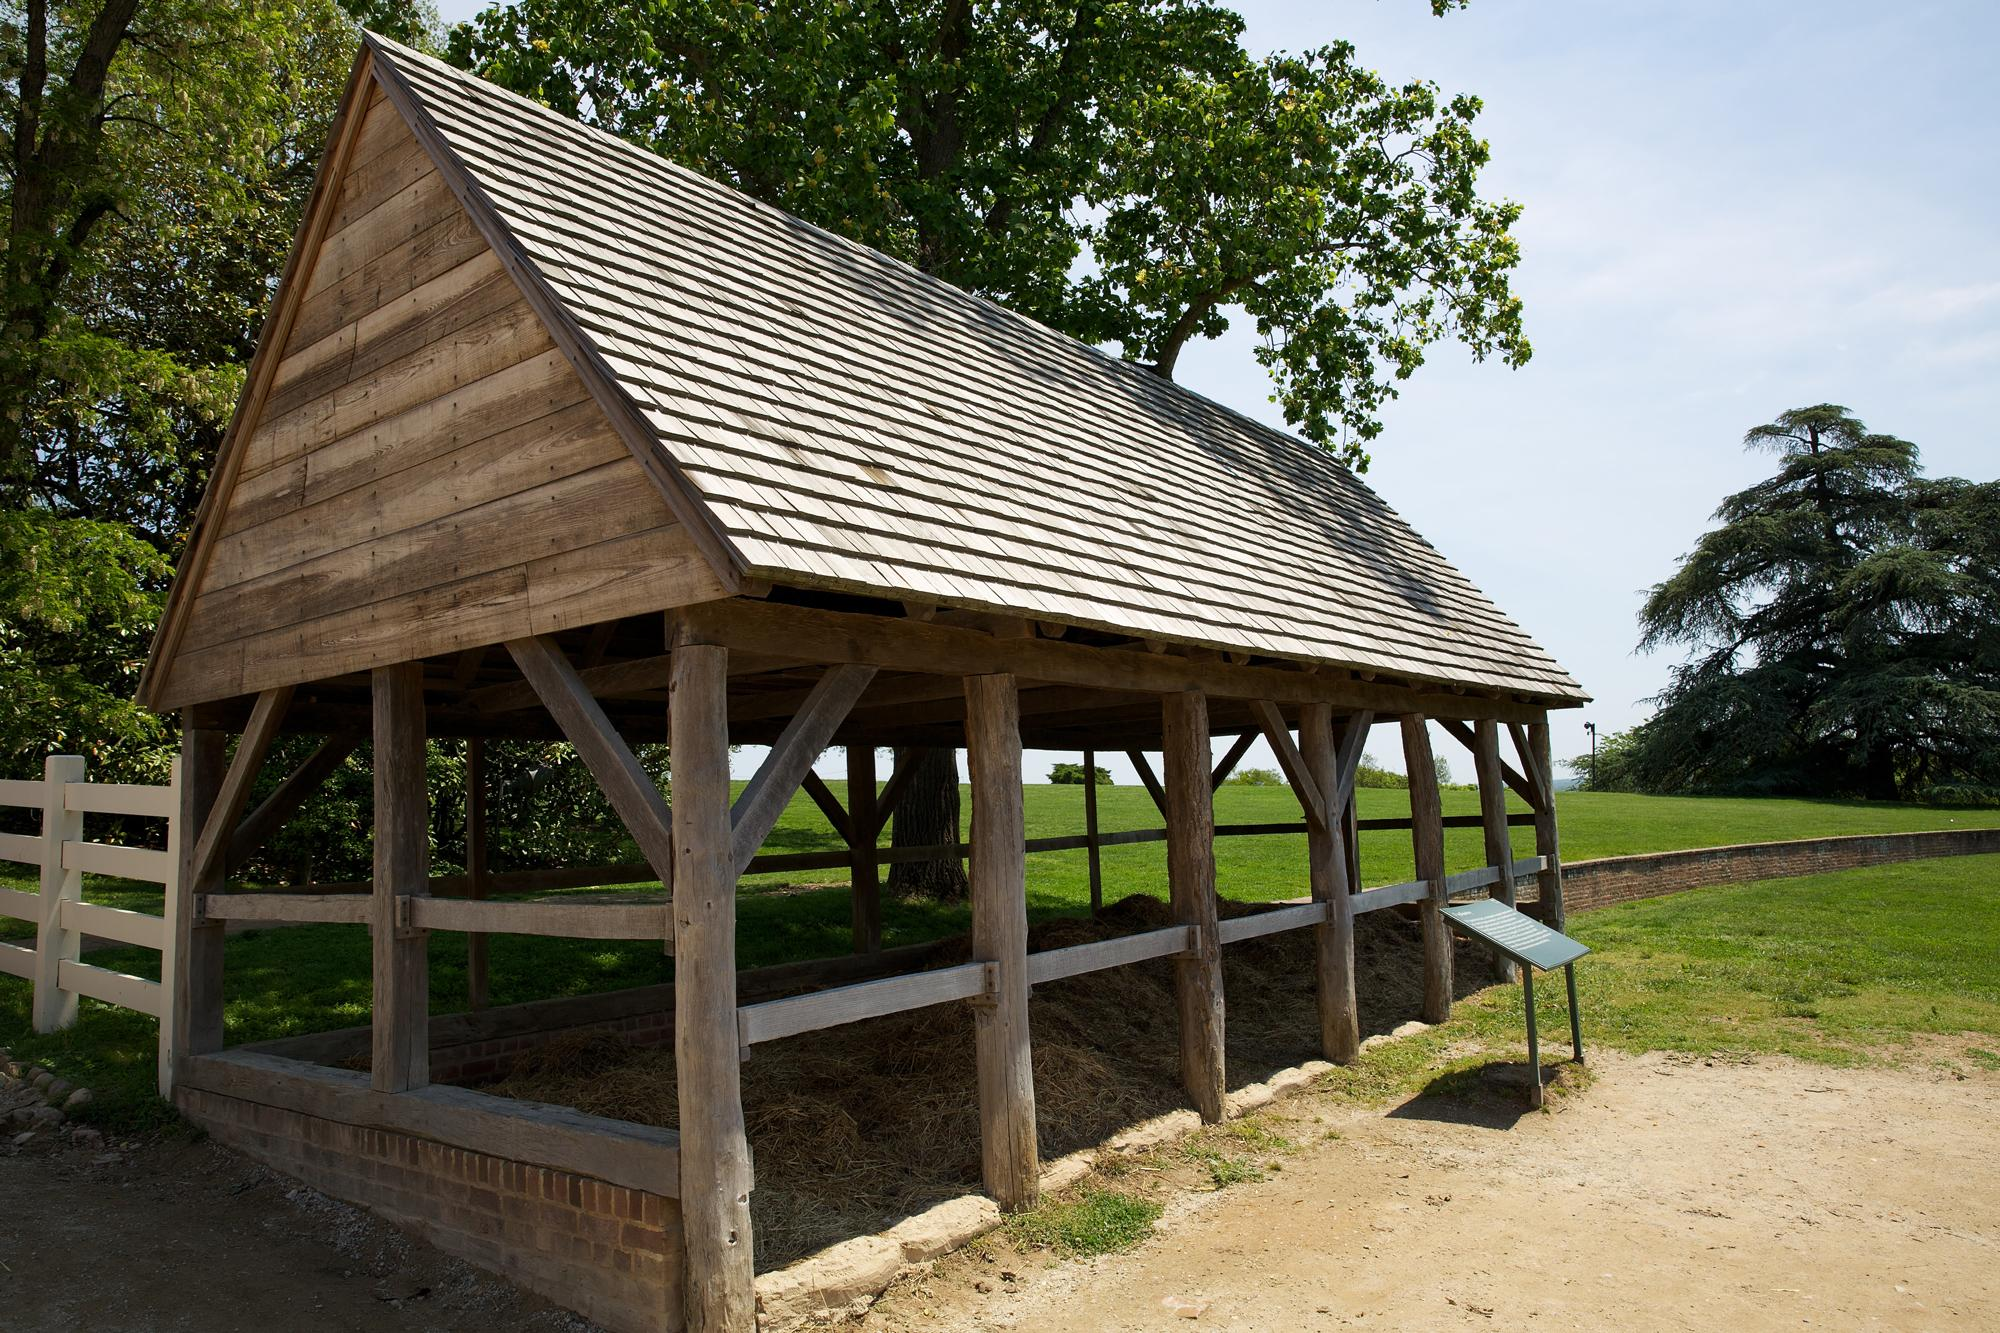 The repository for dung at Mount Vernon (MVLA)